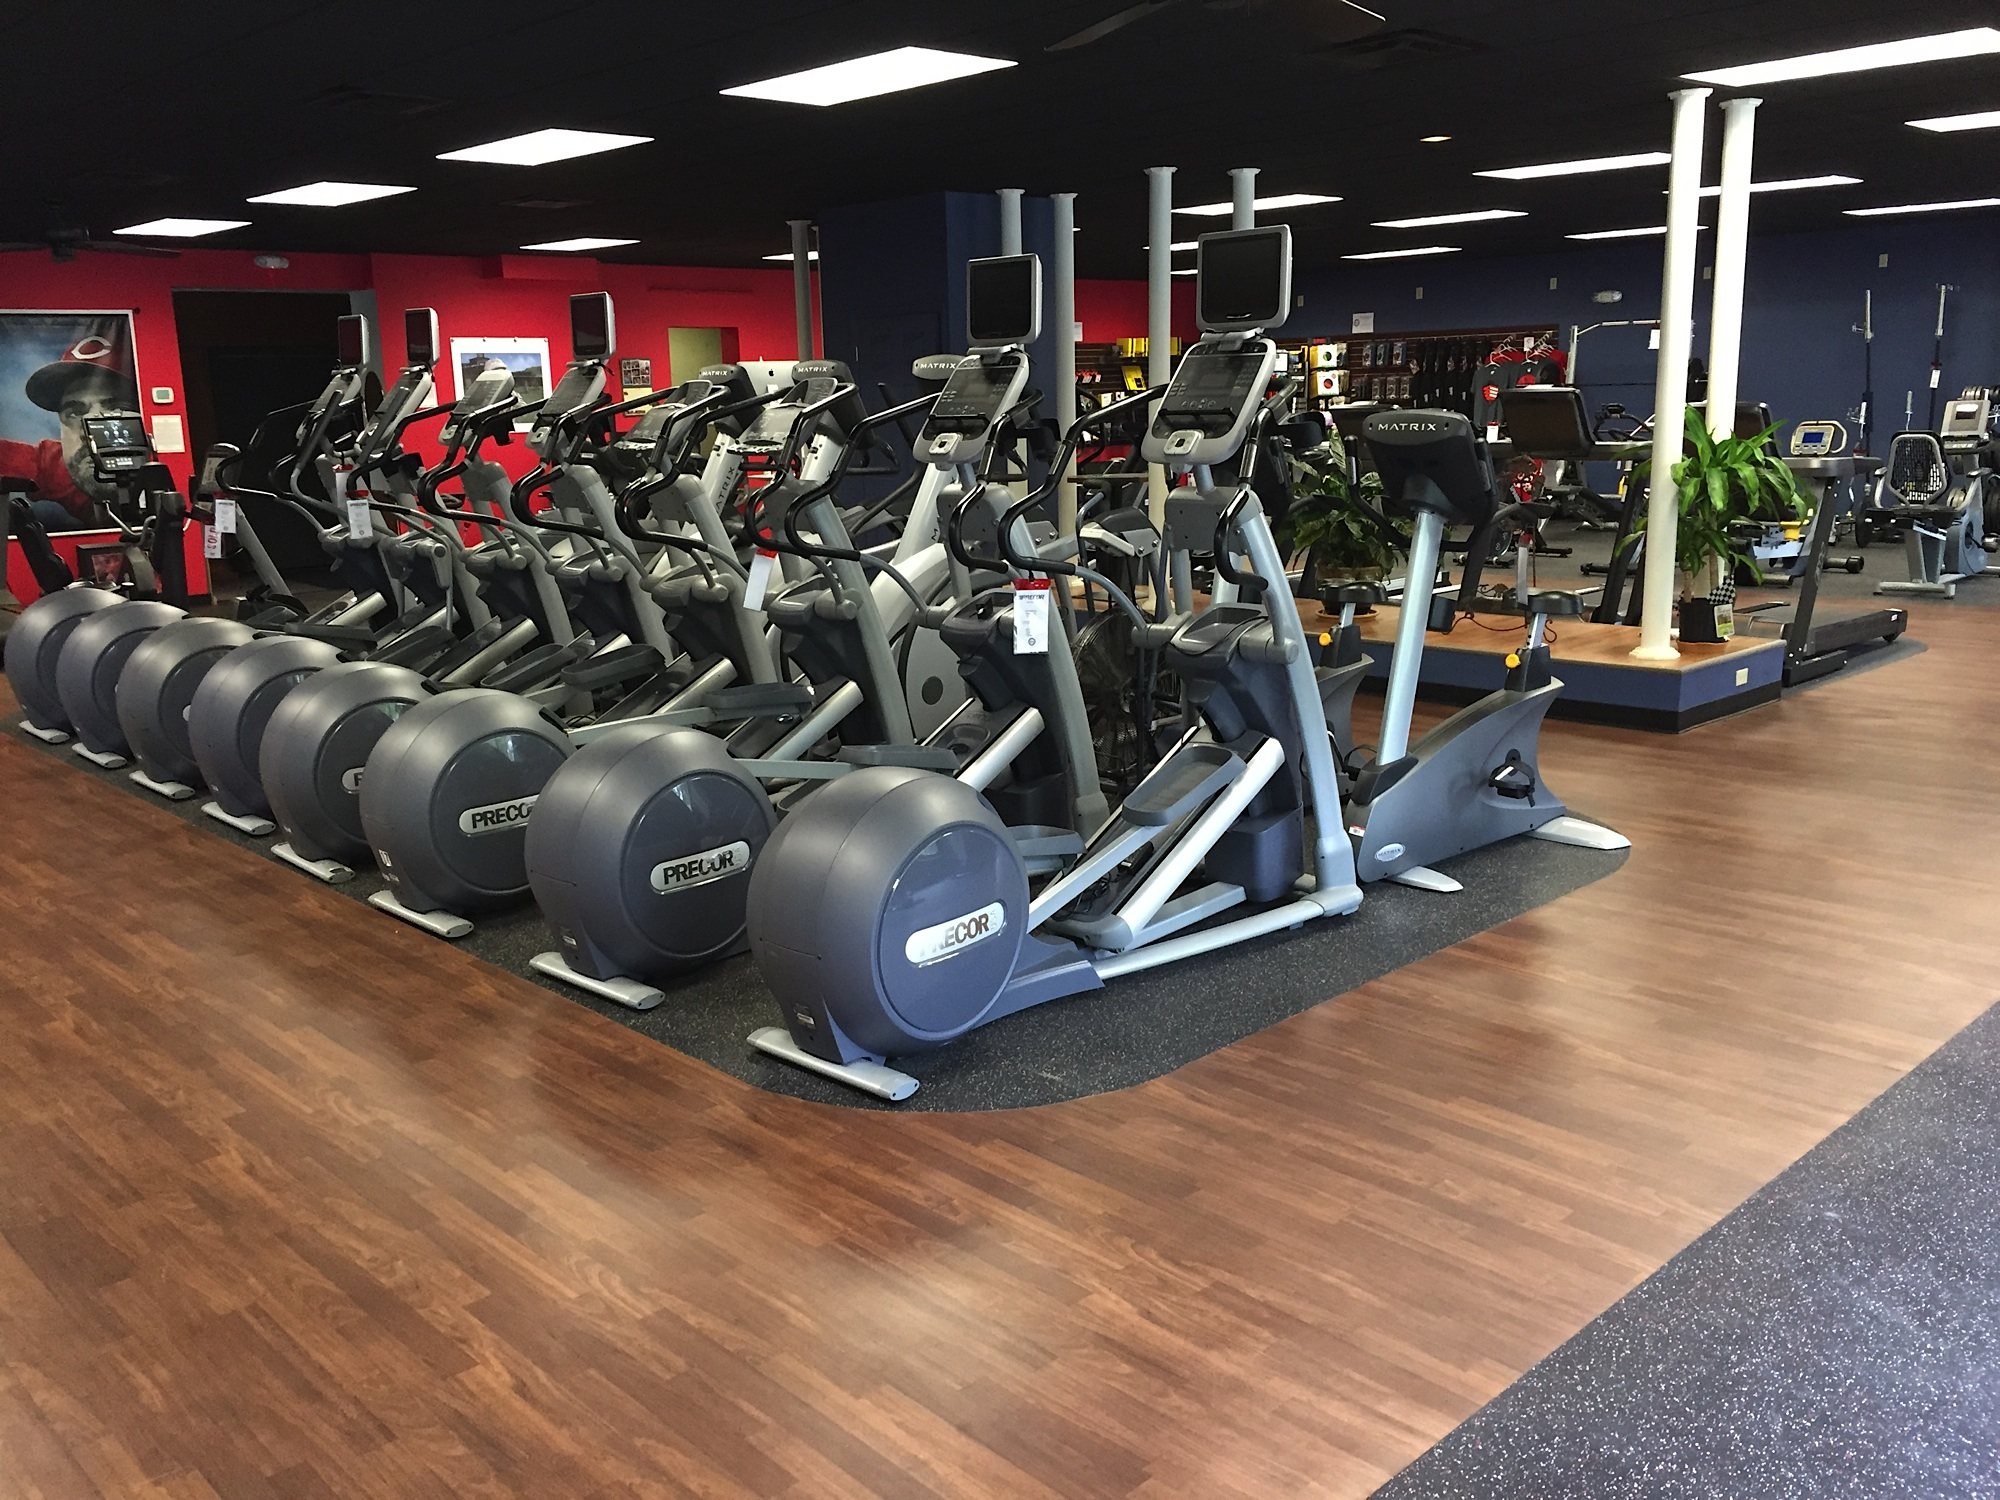 Commercial Cardio, Strength, and Fitness Accessories